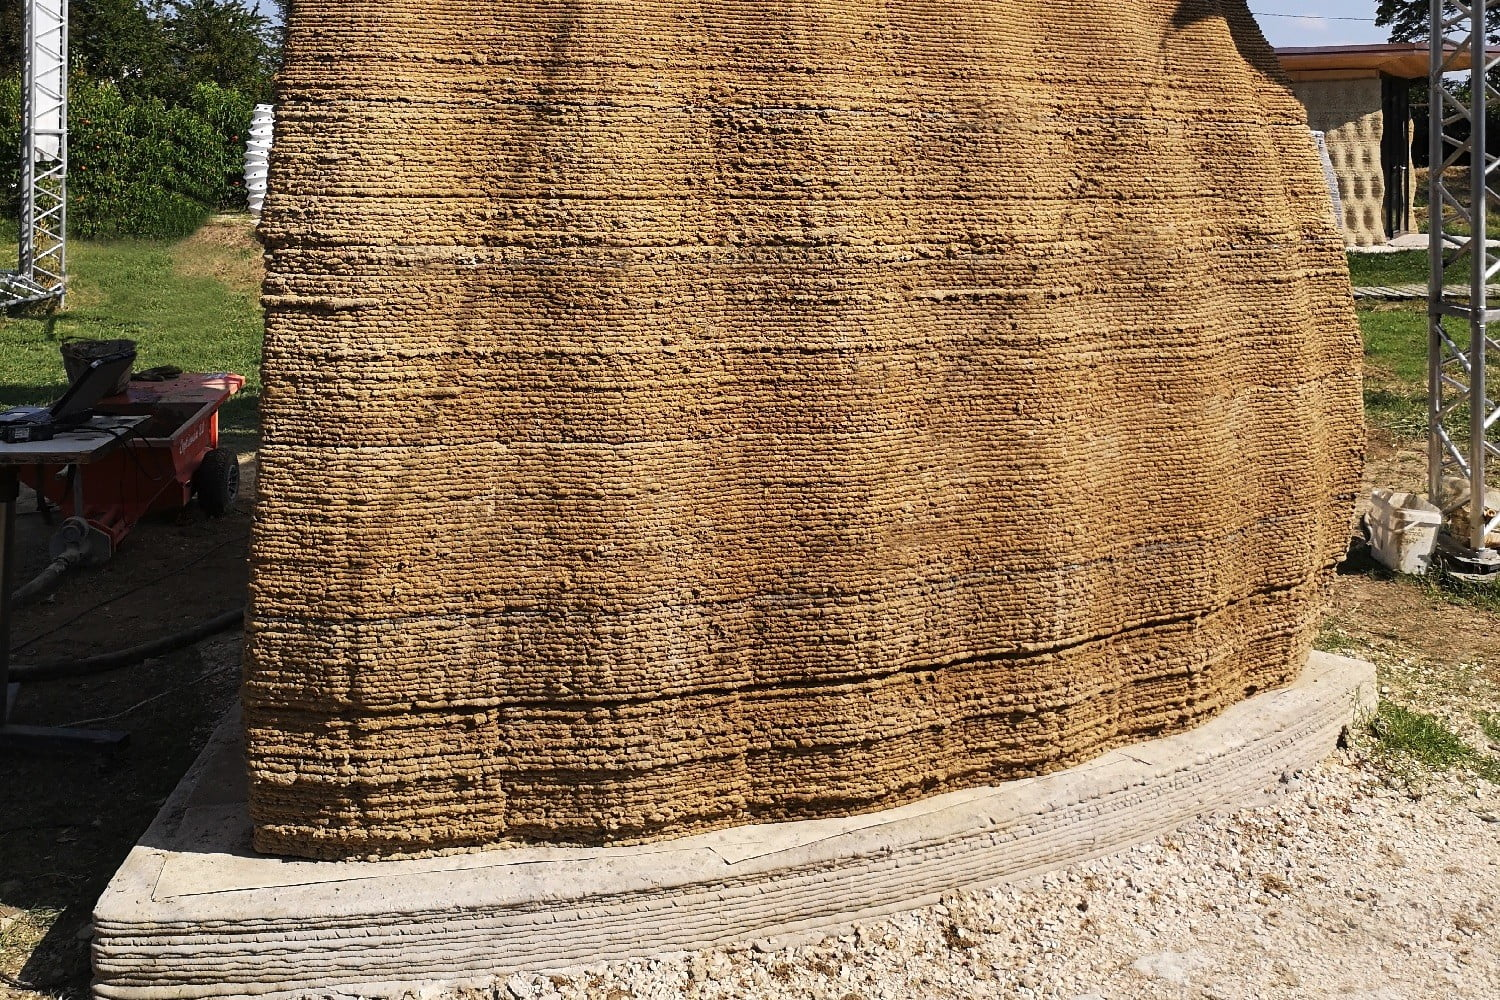 3d printed wasp nest house tecla earth wall section by crane img2